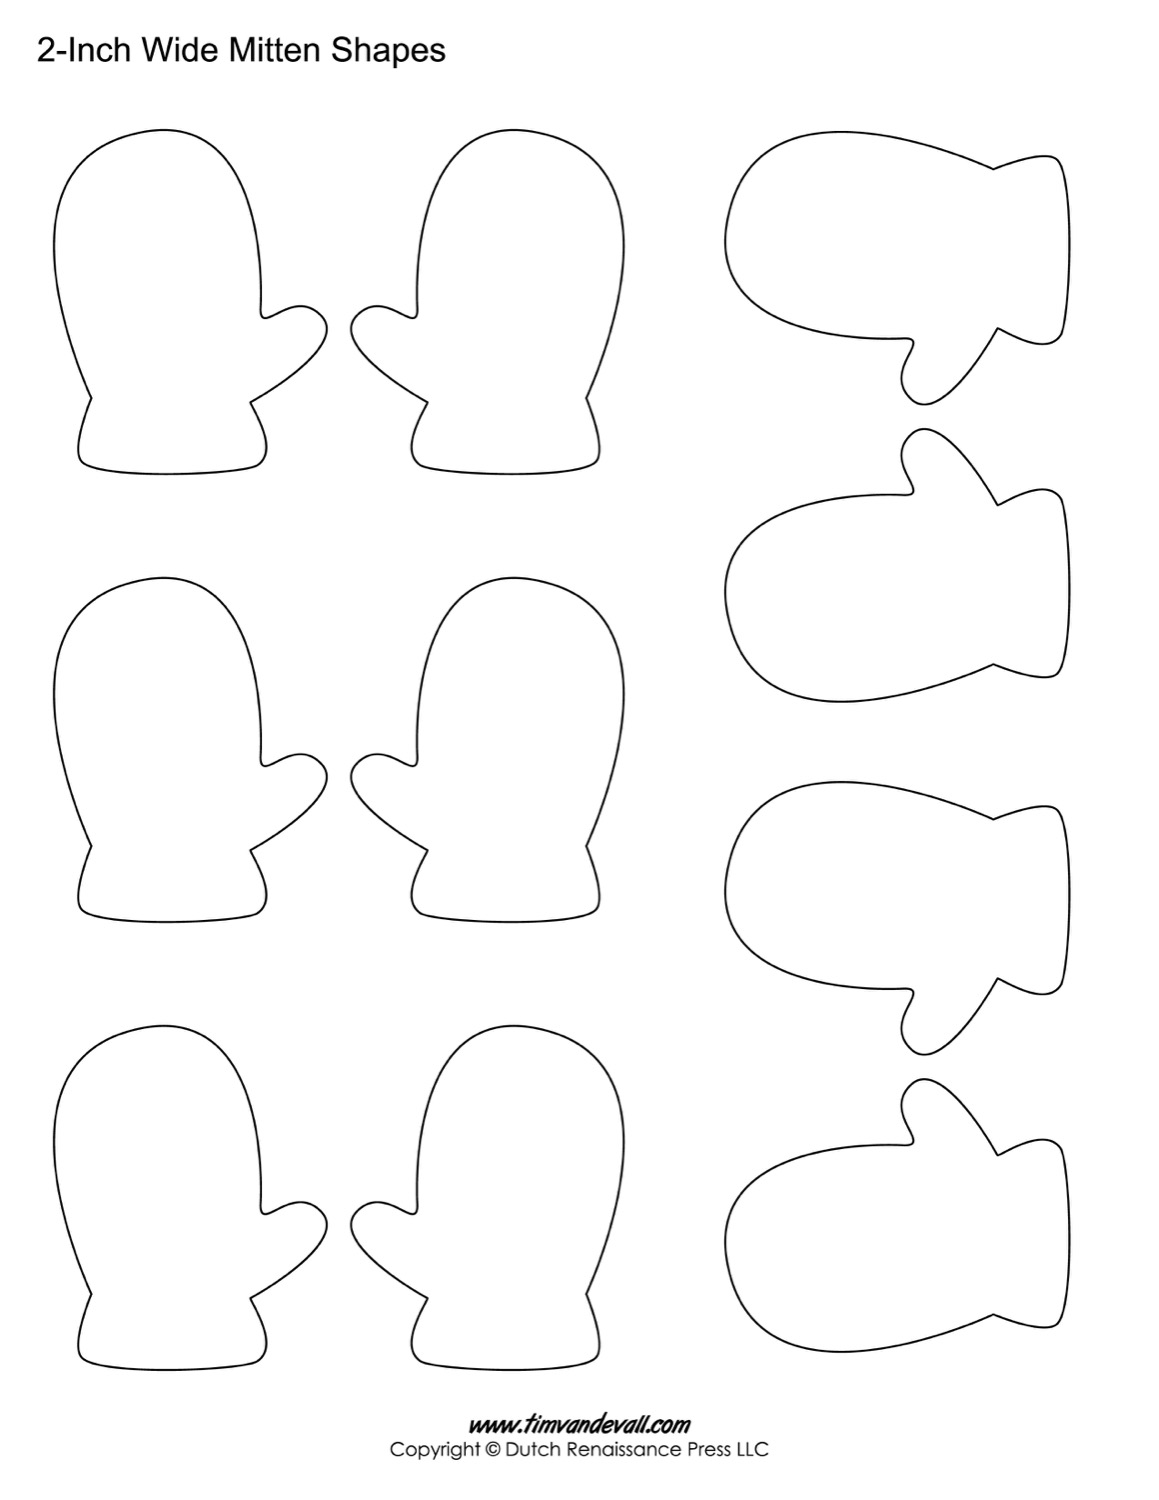 Preschool Mitten Shape Worksheet Preschool Best Free Printable Worksheets